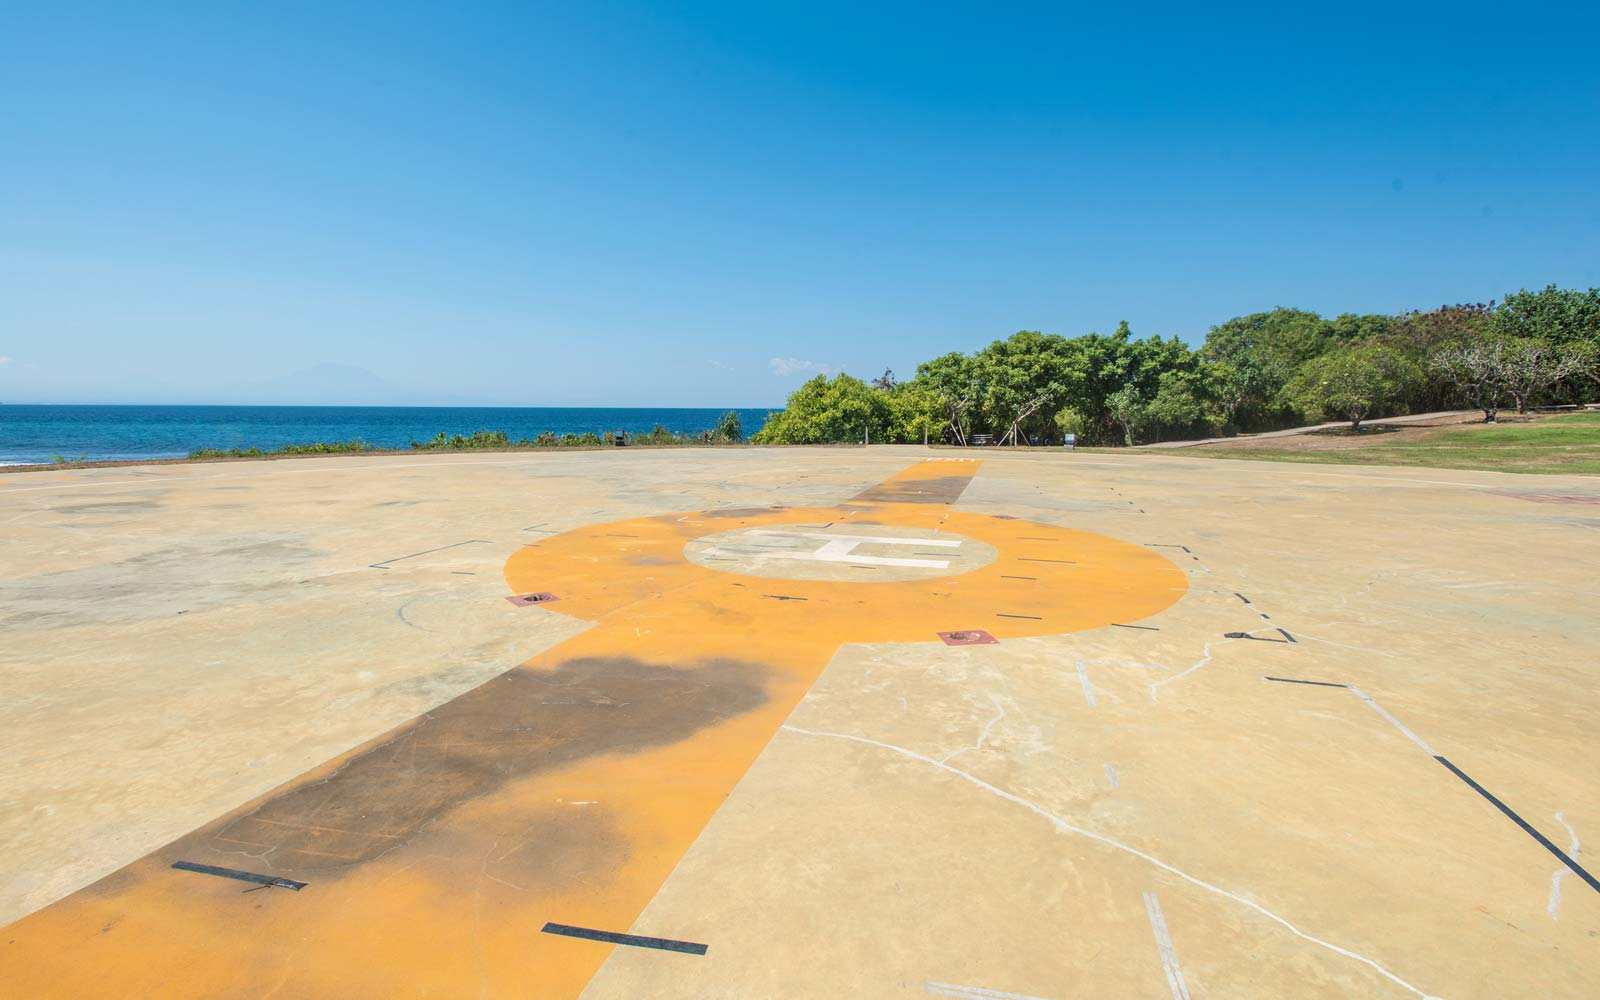 Helipad at seaside